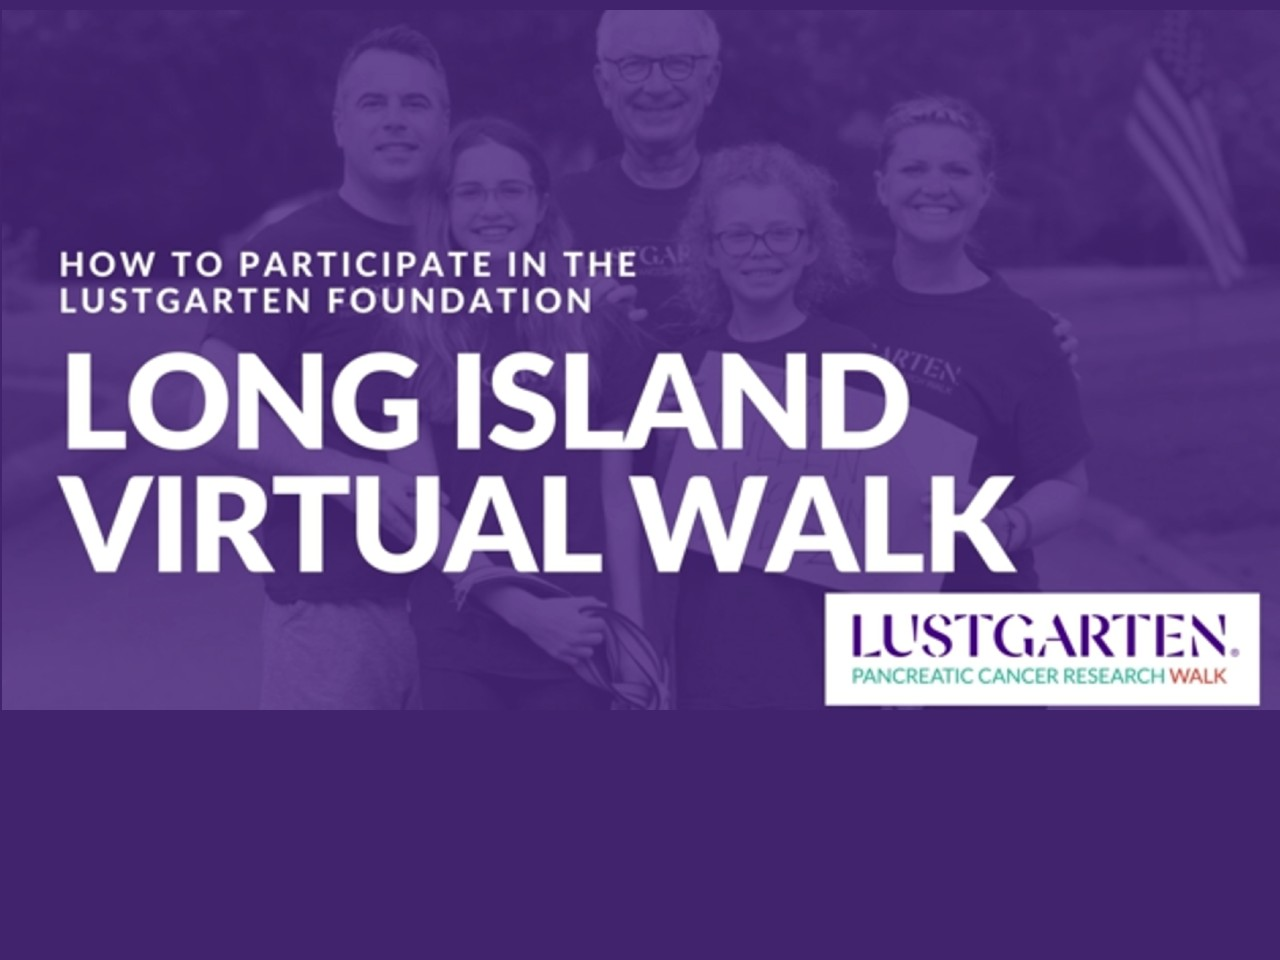 Join the Lustgarten Foundation As We Walk Virtually for Pancreatic Cancer Research!